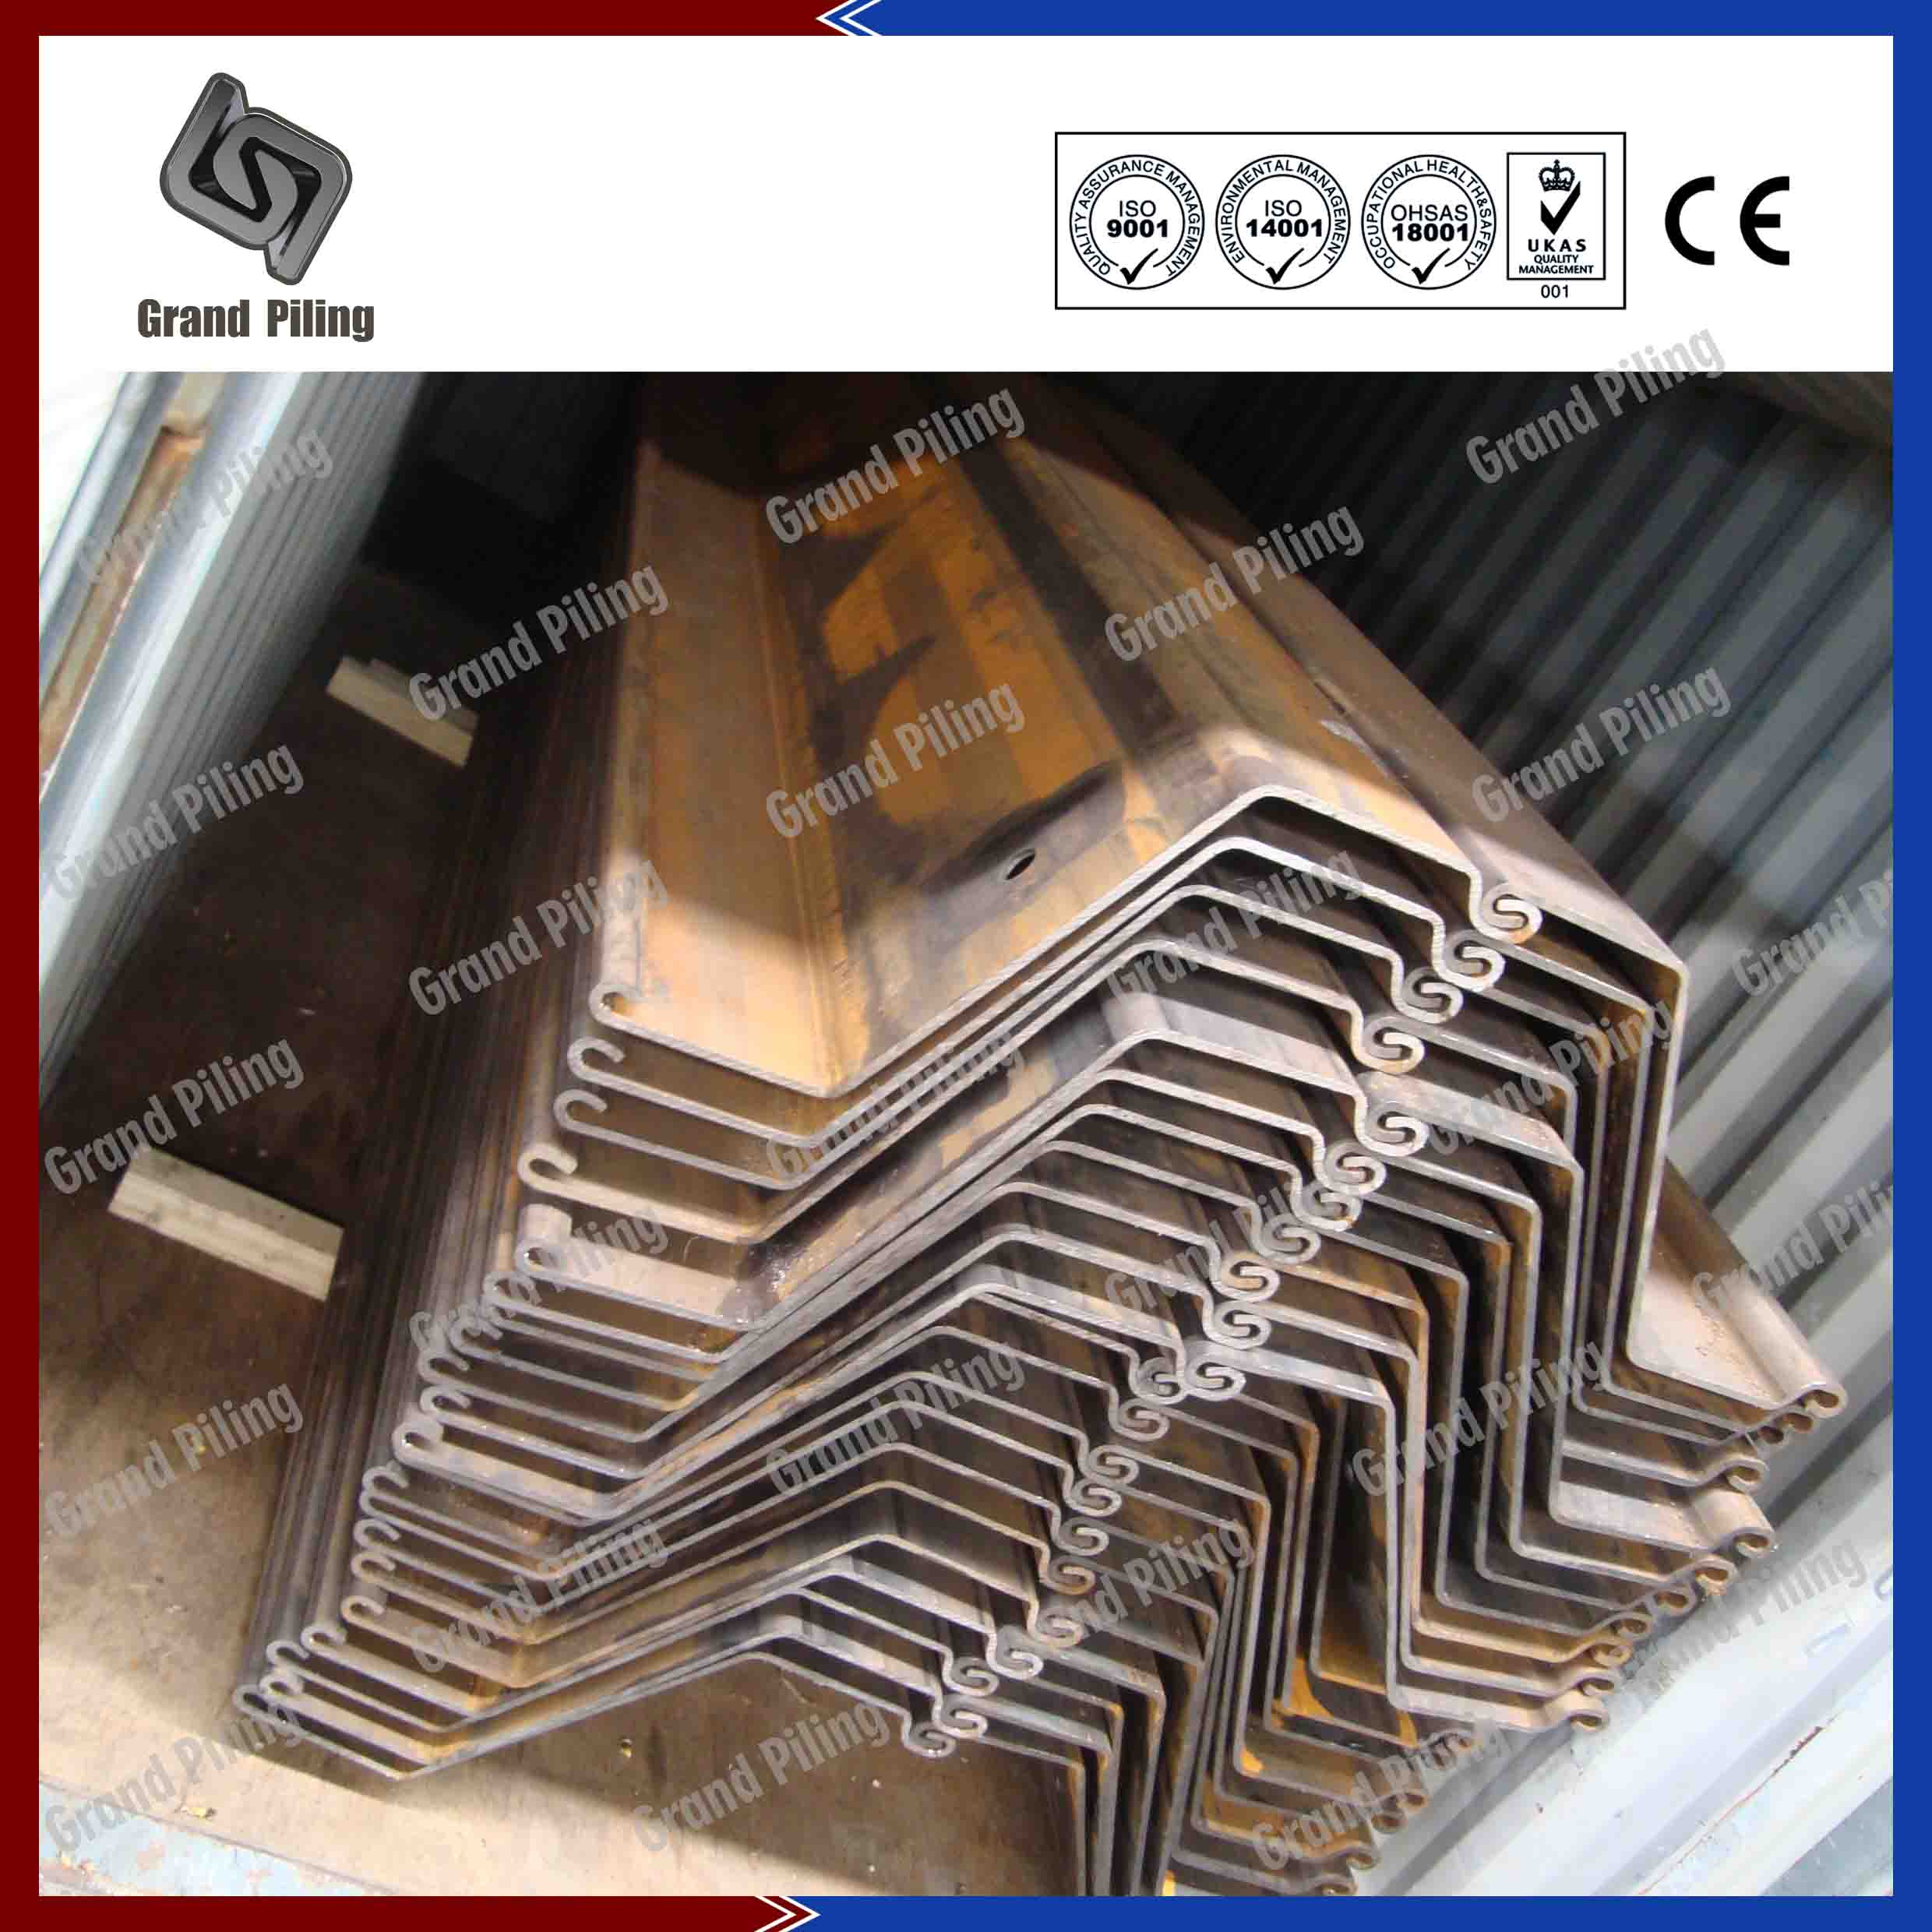 Delivery in welded pairs